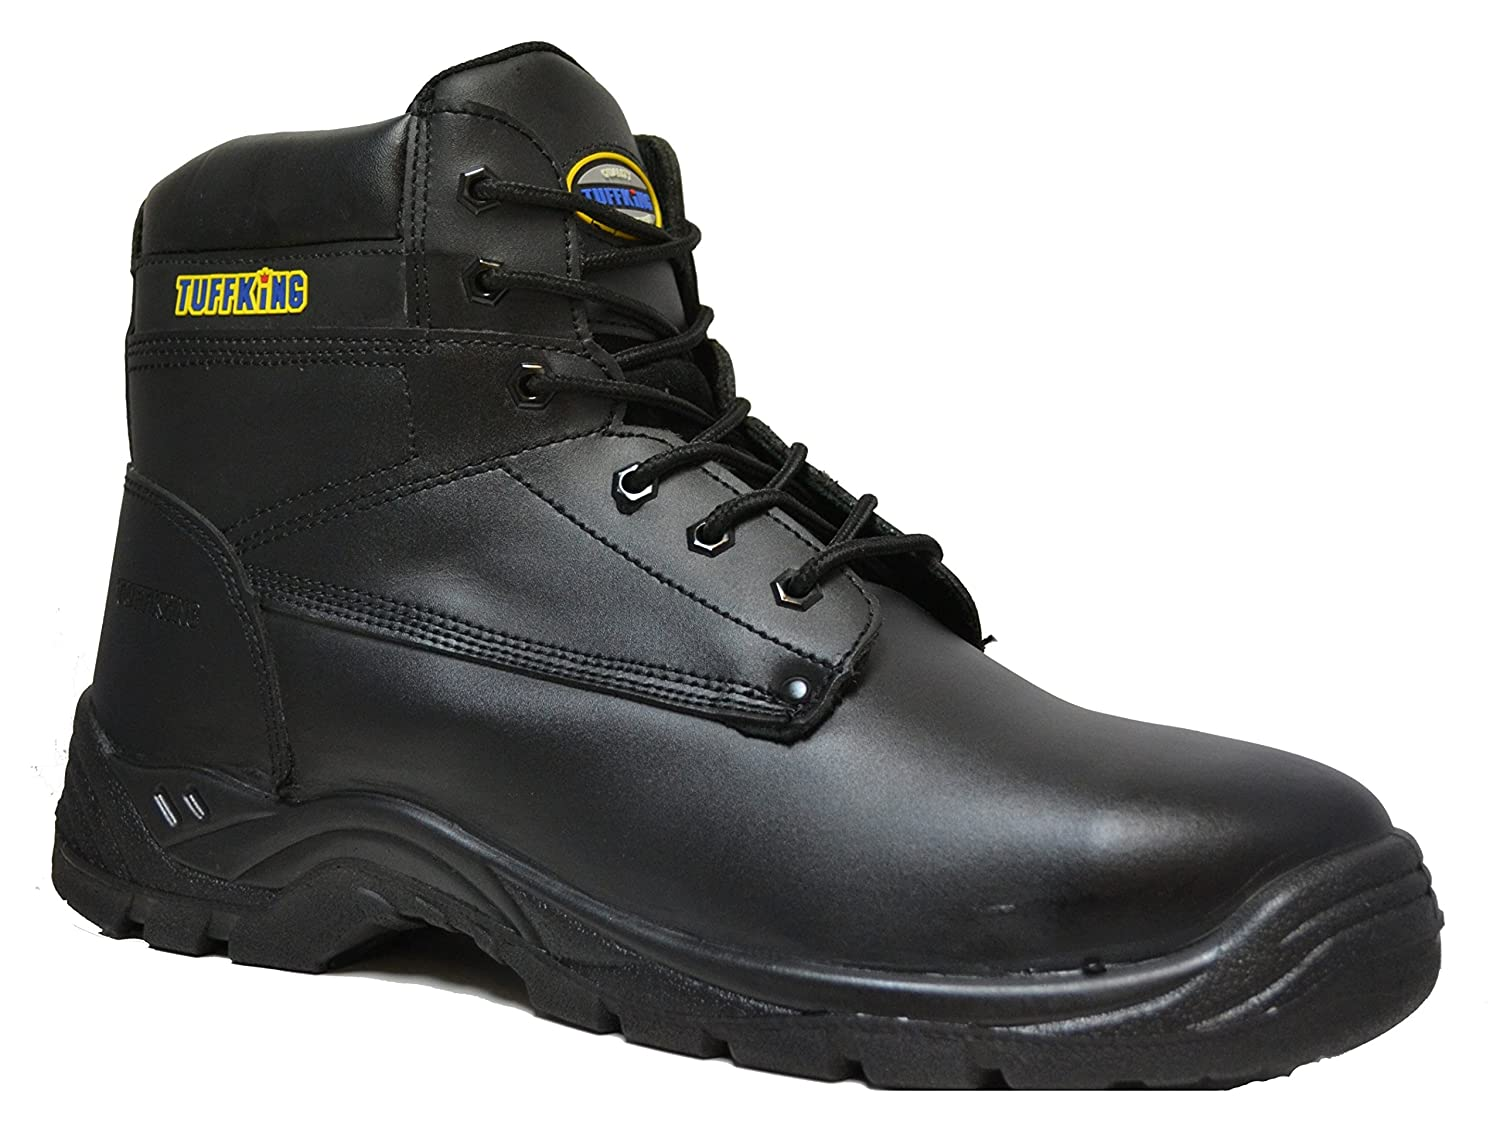 45a2823ae79 Tuffking 2407 S3 Black Outsize Large Size Steel Toe Cap Safety Work Boots  Size 15-17